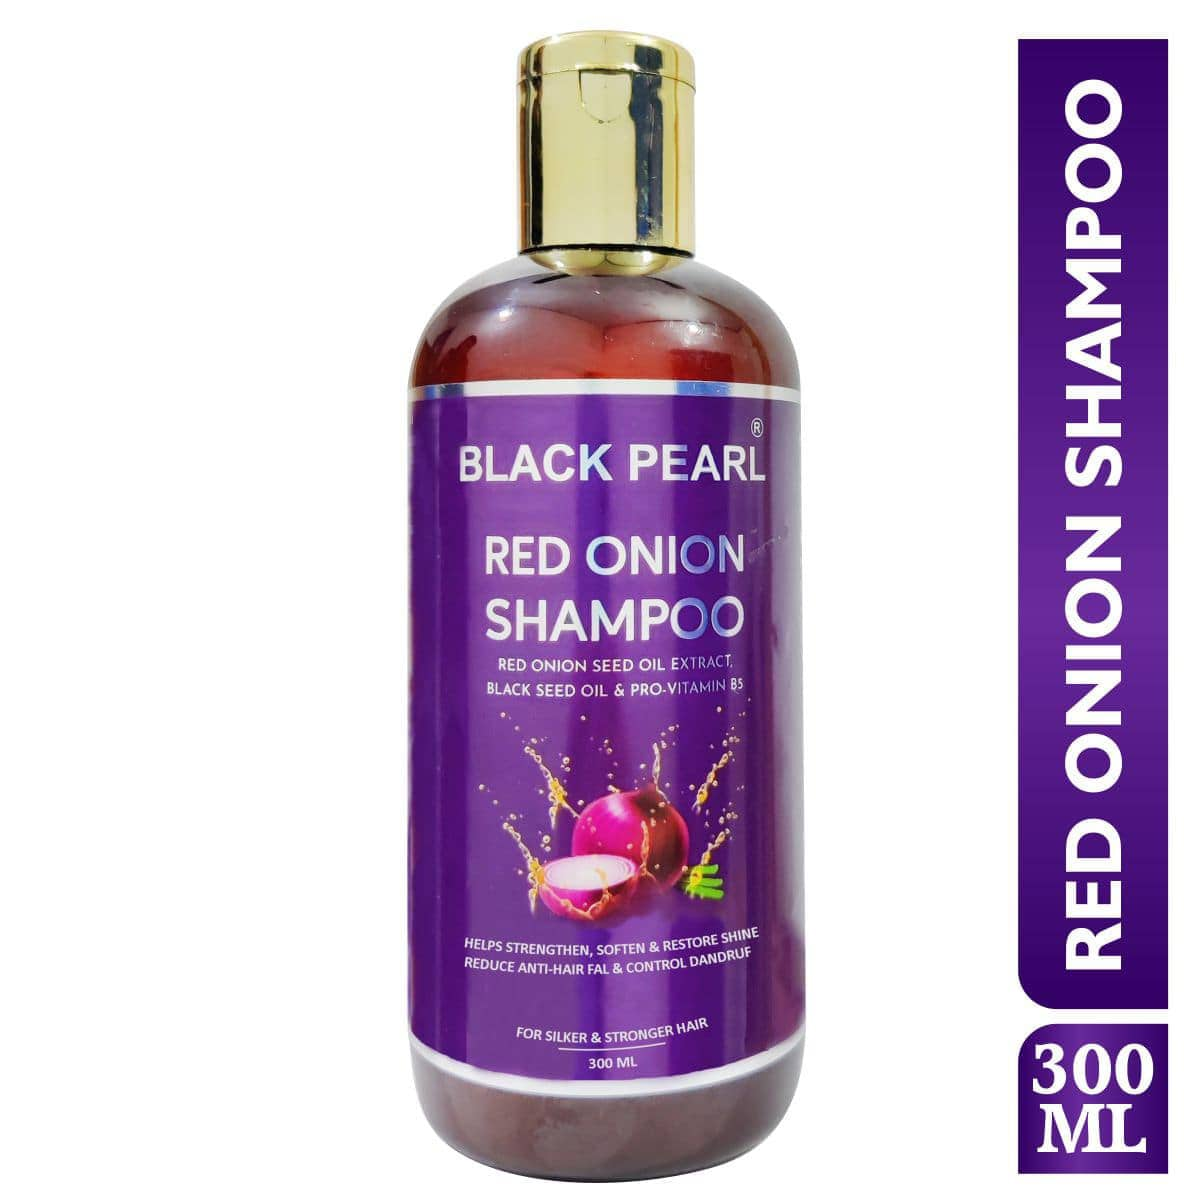 Red Onion Shampoo